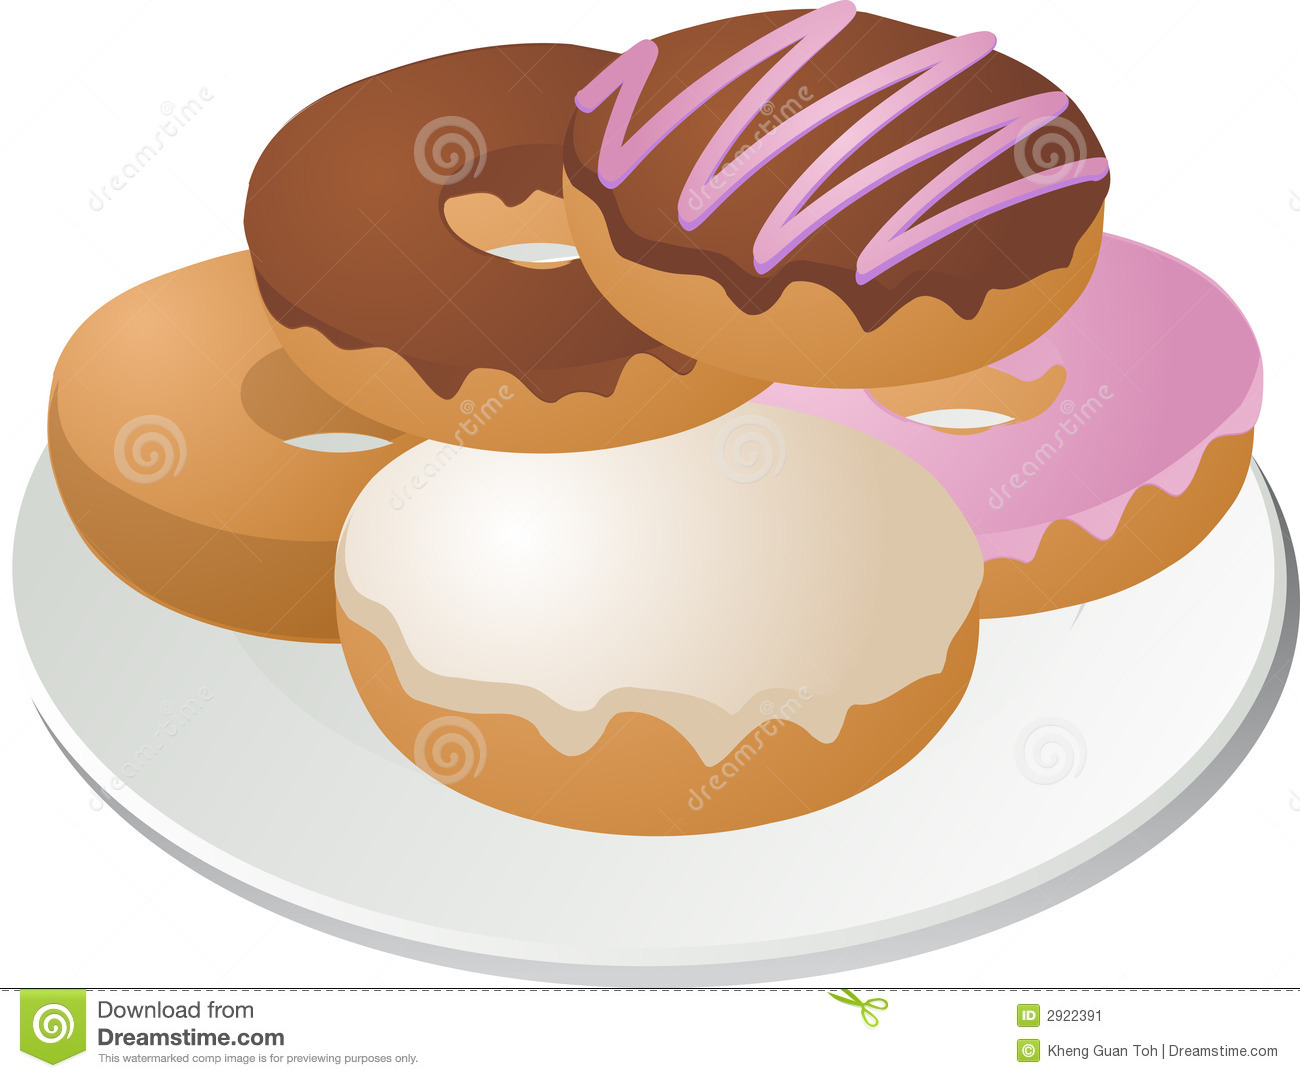 Clipartfest donuts on plate. Cream filled donut clipart